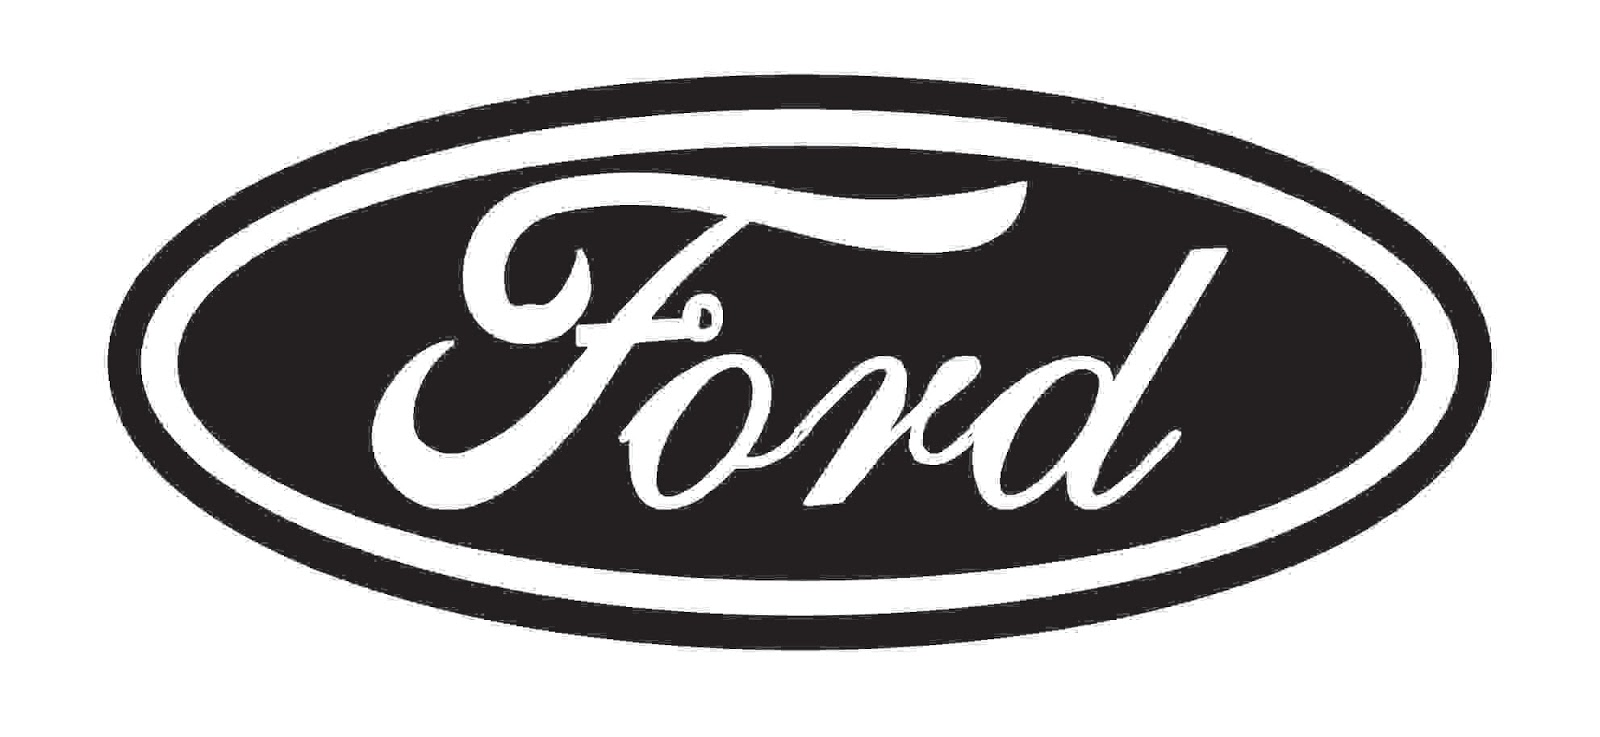 Ford logo clipart. Free cliparts download clip